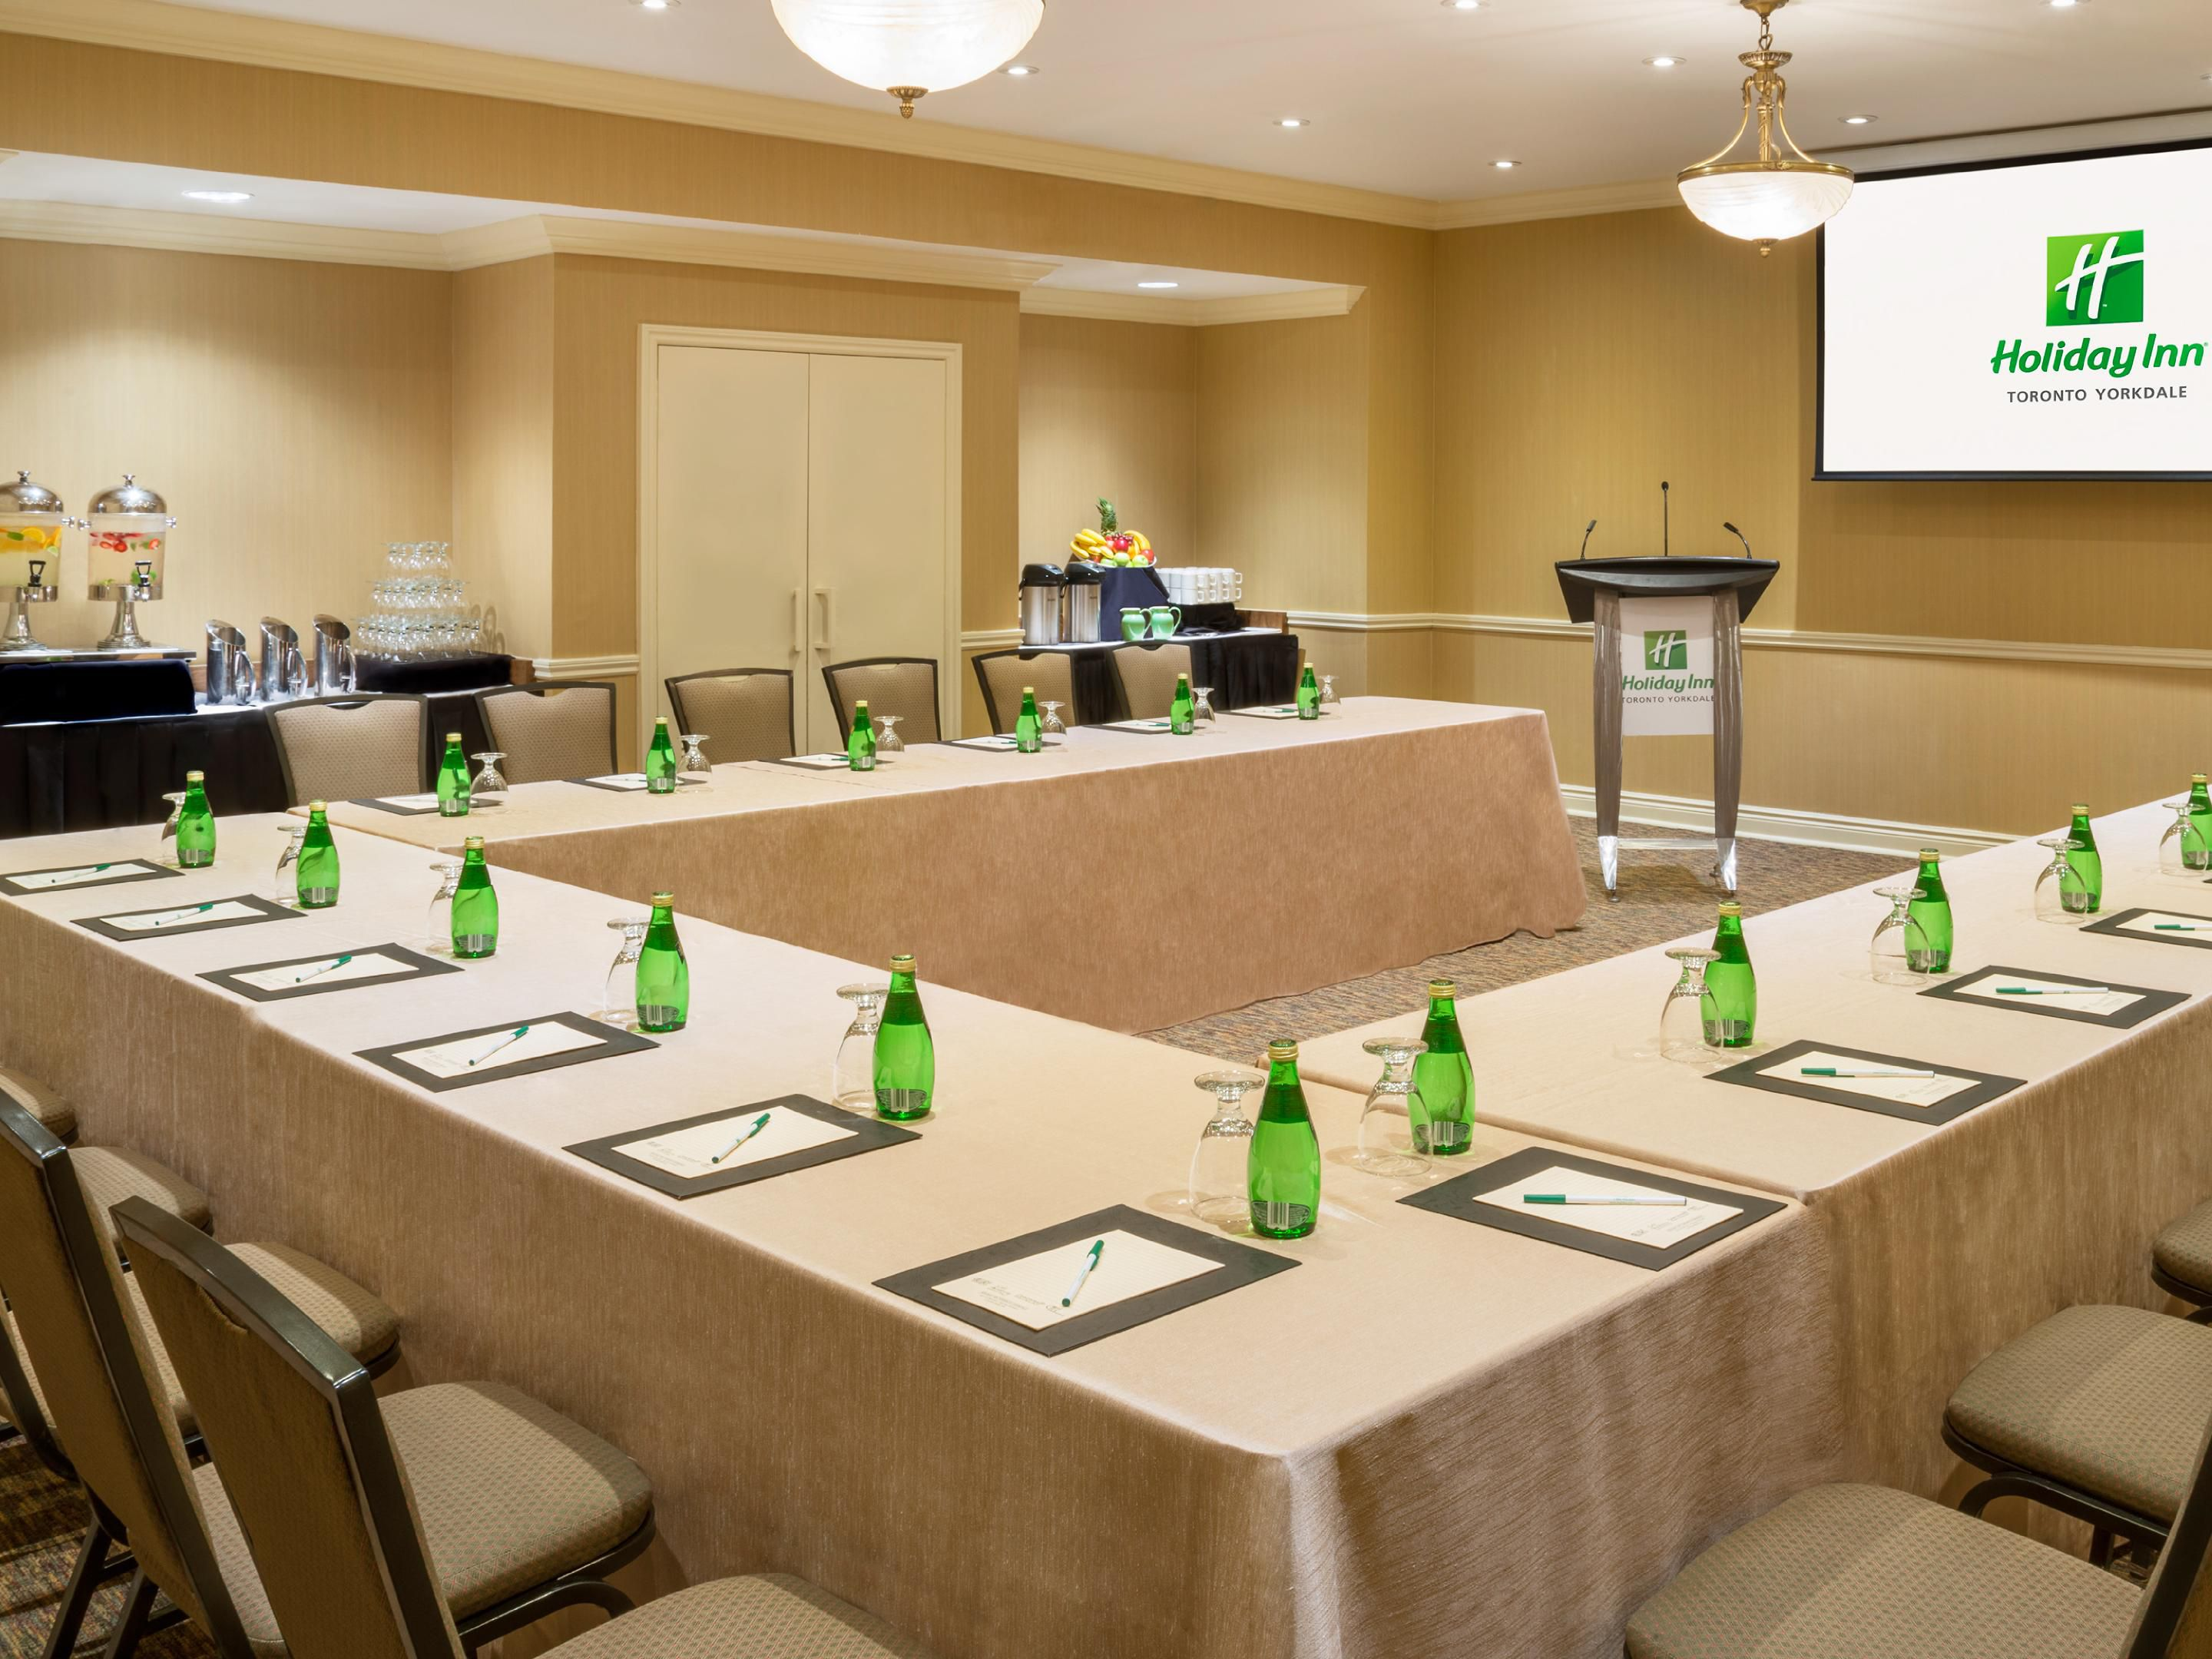 Newly Renovated 550 sq. ft. Room for up to 60 Attendees